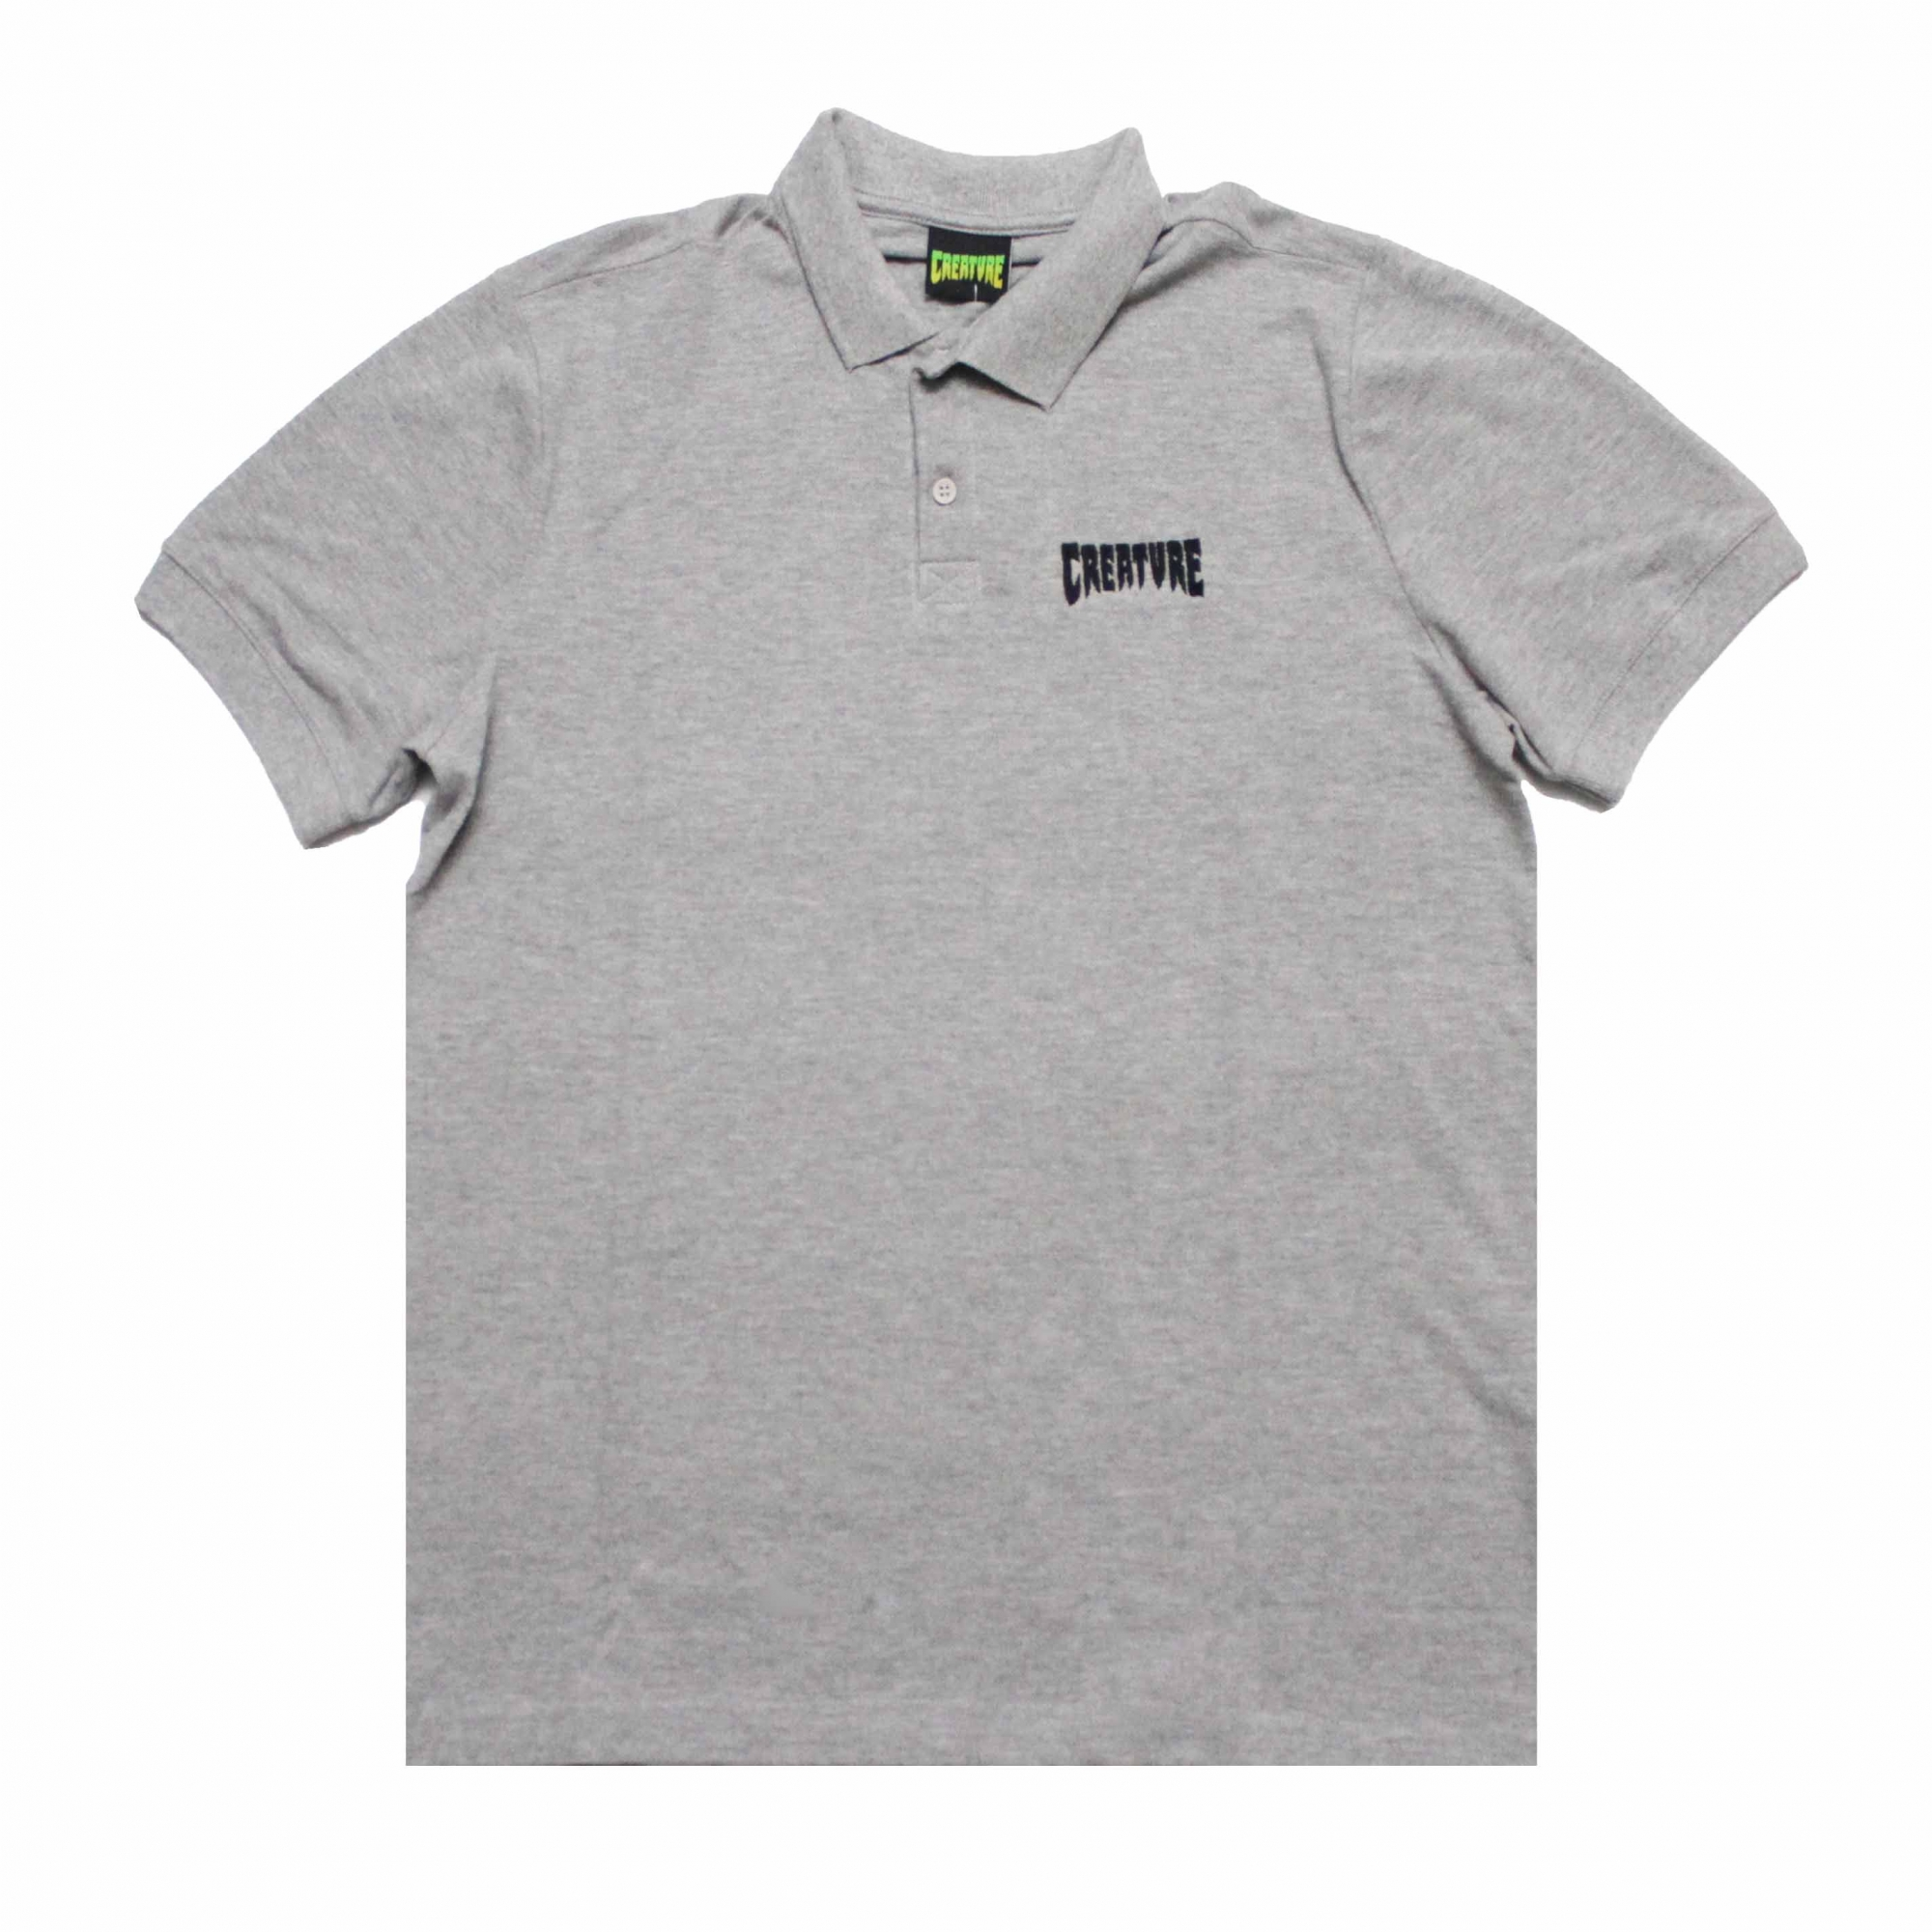 Camisa Polo Creature Mini Logo Bordado - Cinza Mescla